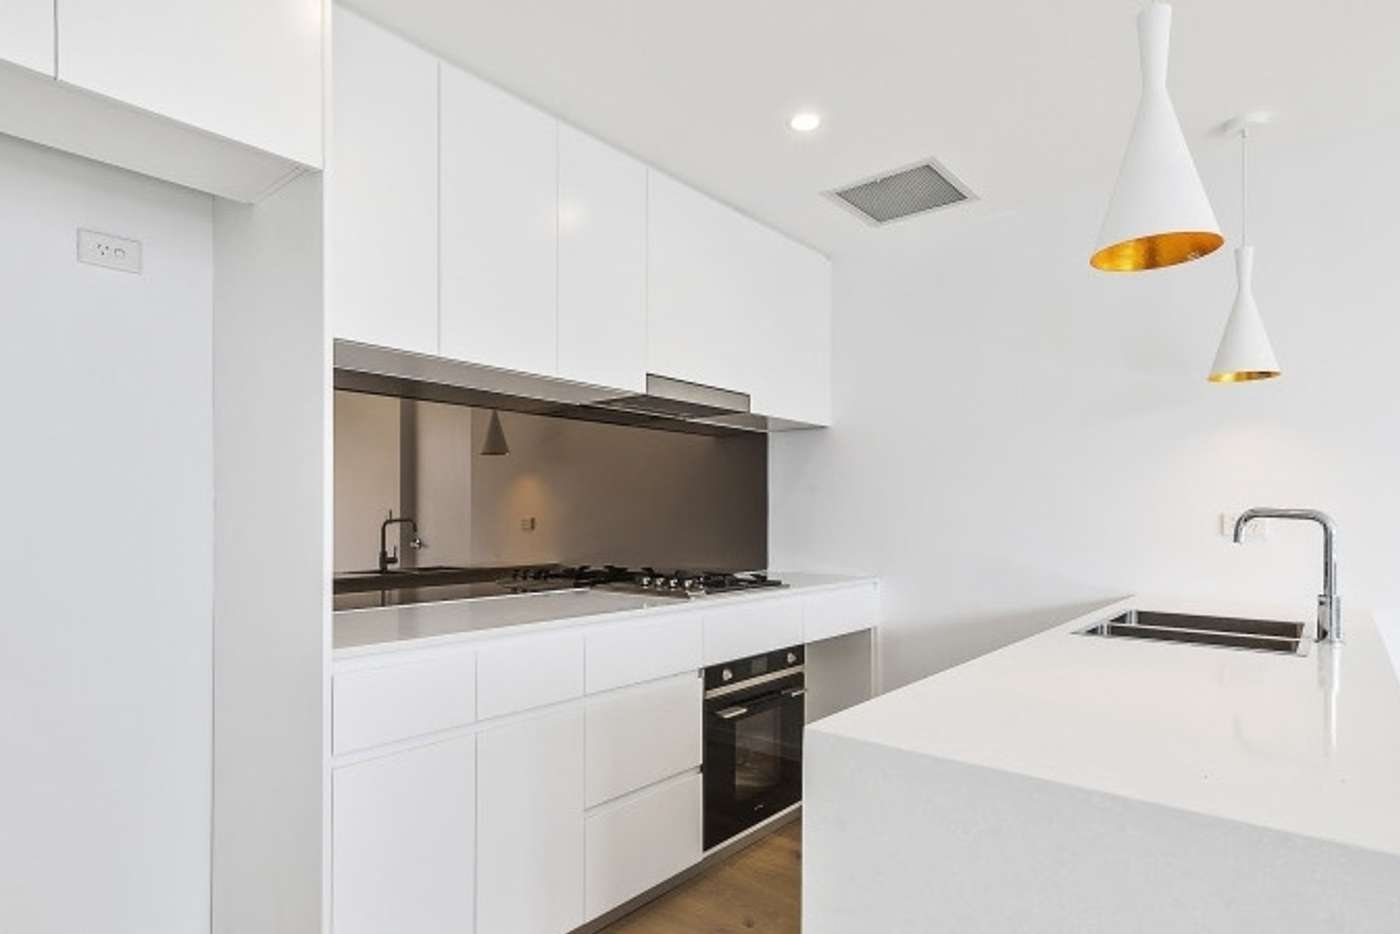 Main view of Homely apartment listing, 2706/2 Mentmore Avenue, Rosebery NSW 2018